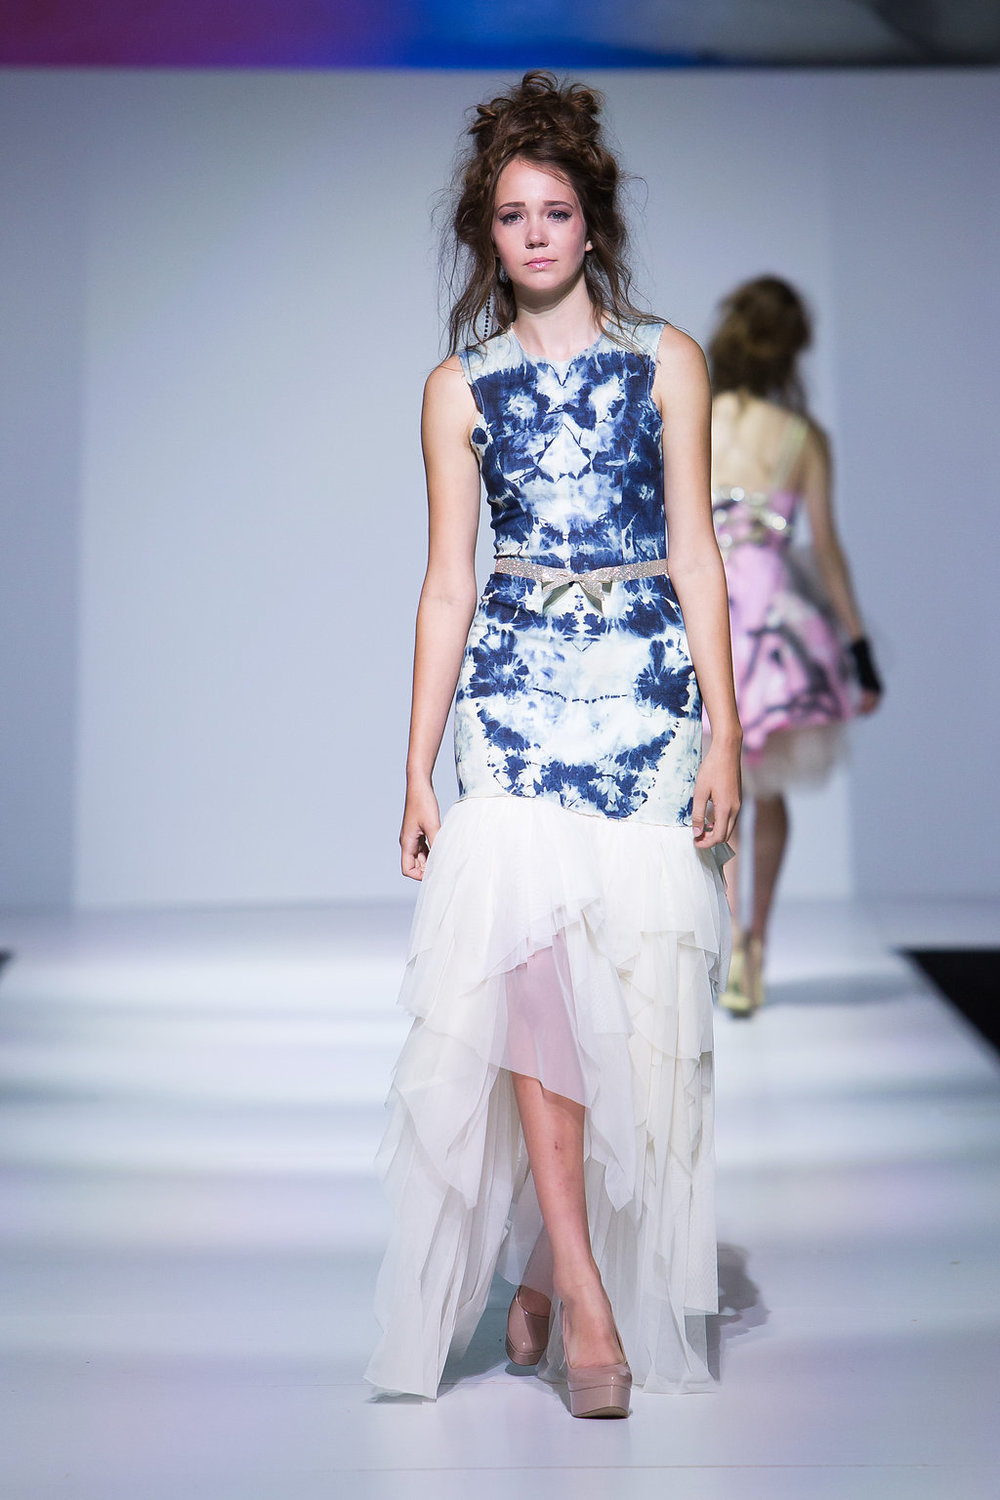 Symmetrical bleached denim with netting skirt